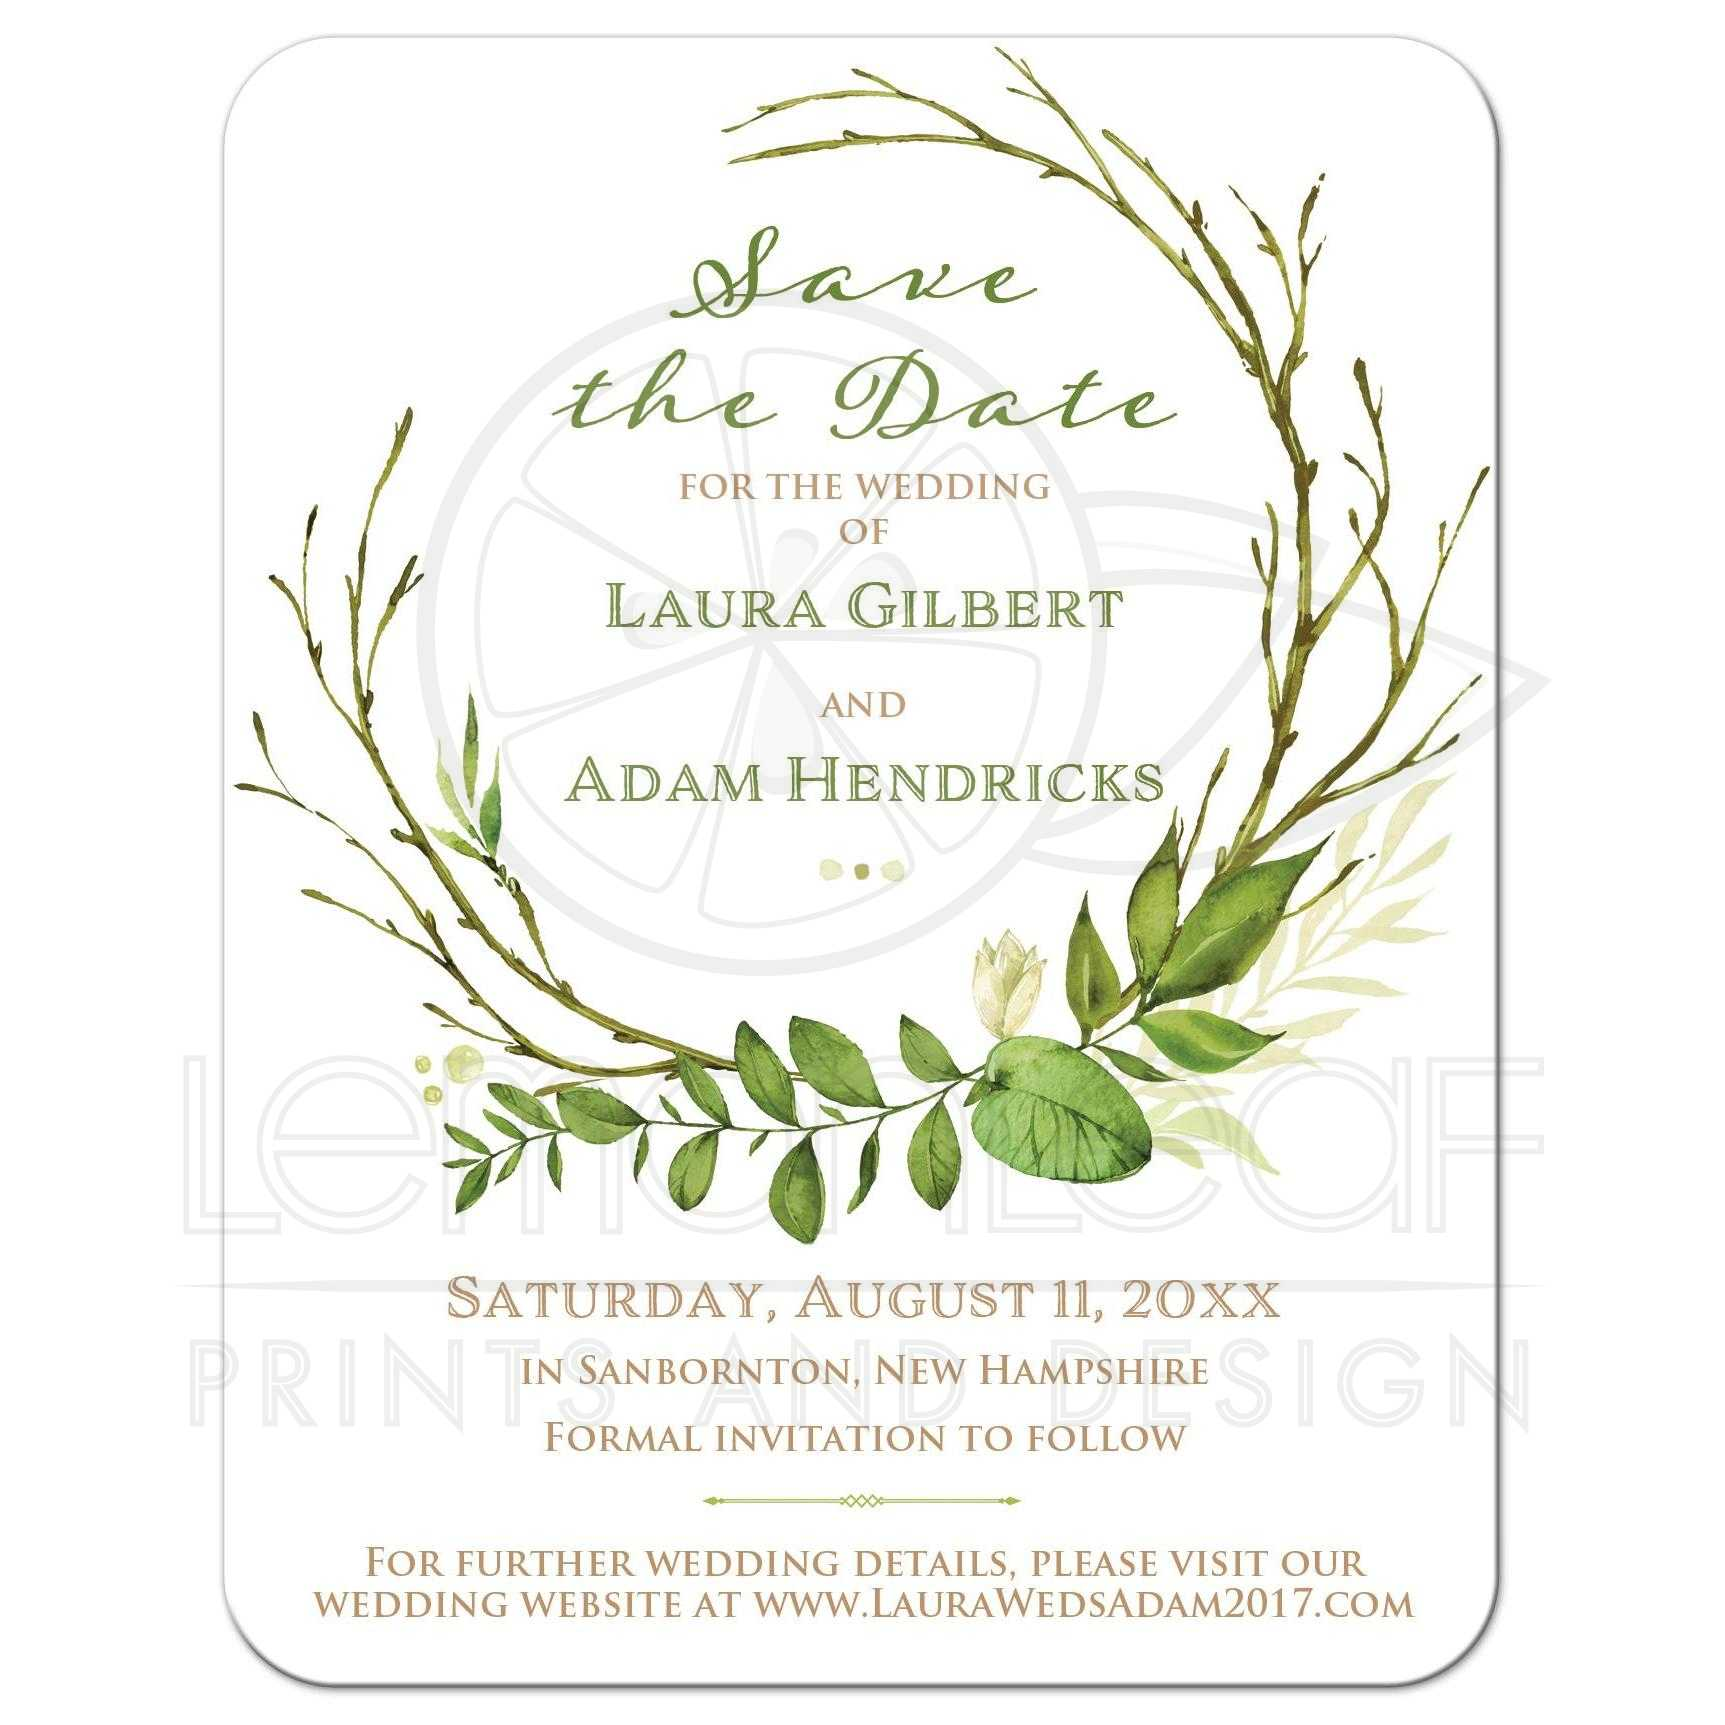 modern bat home designs html with Greenery Foliage Wedding Save The Date Card Watercolor Leaves Stems Boughs Wreath on Wedding Invitation Pink Marble together with Perfect Cool Tattoo Ideas as well Bunco Party Invitations additionally Search furthermore 3 Star Hotel Room Interior Design By.